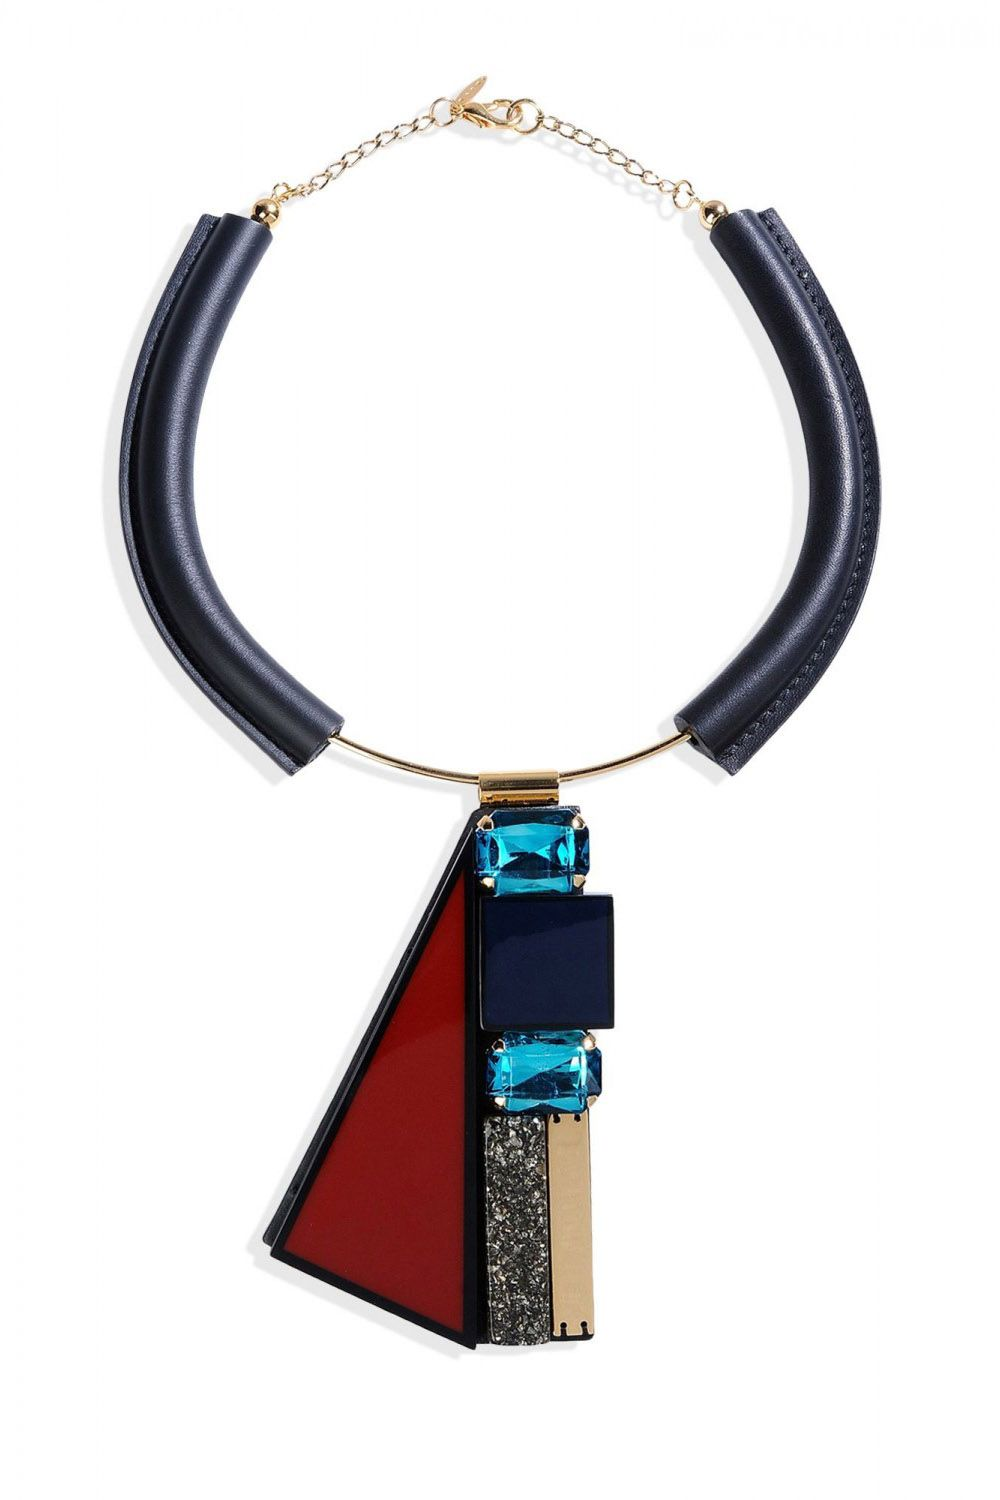 "<strong>Marni </strong>necklace, $495, <a target=""_blank"" href=""http://shop.harpersbazaar.com/designers/marni/embellished-panel-necklace/"">shopBAZAAR.com</a>"